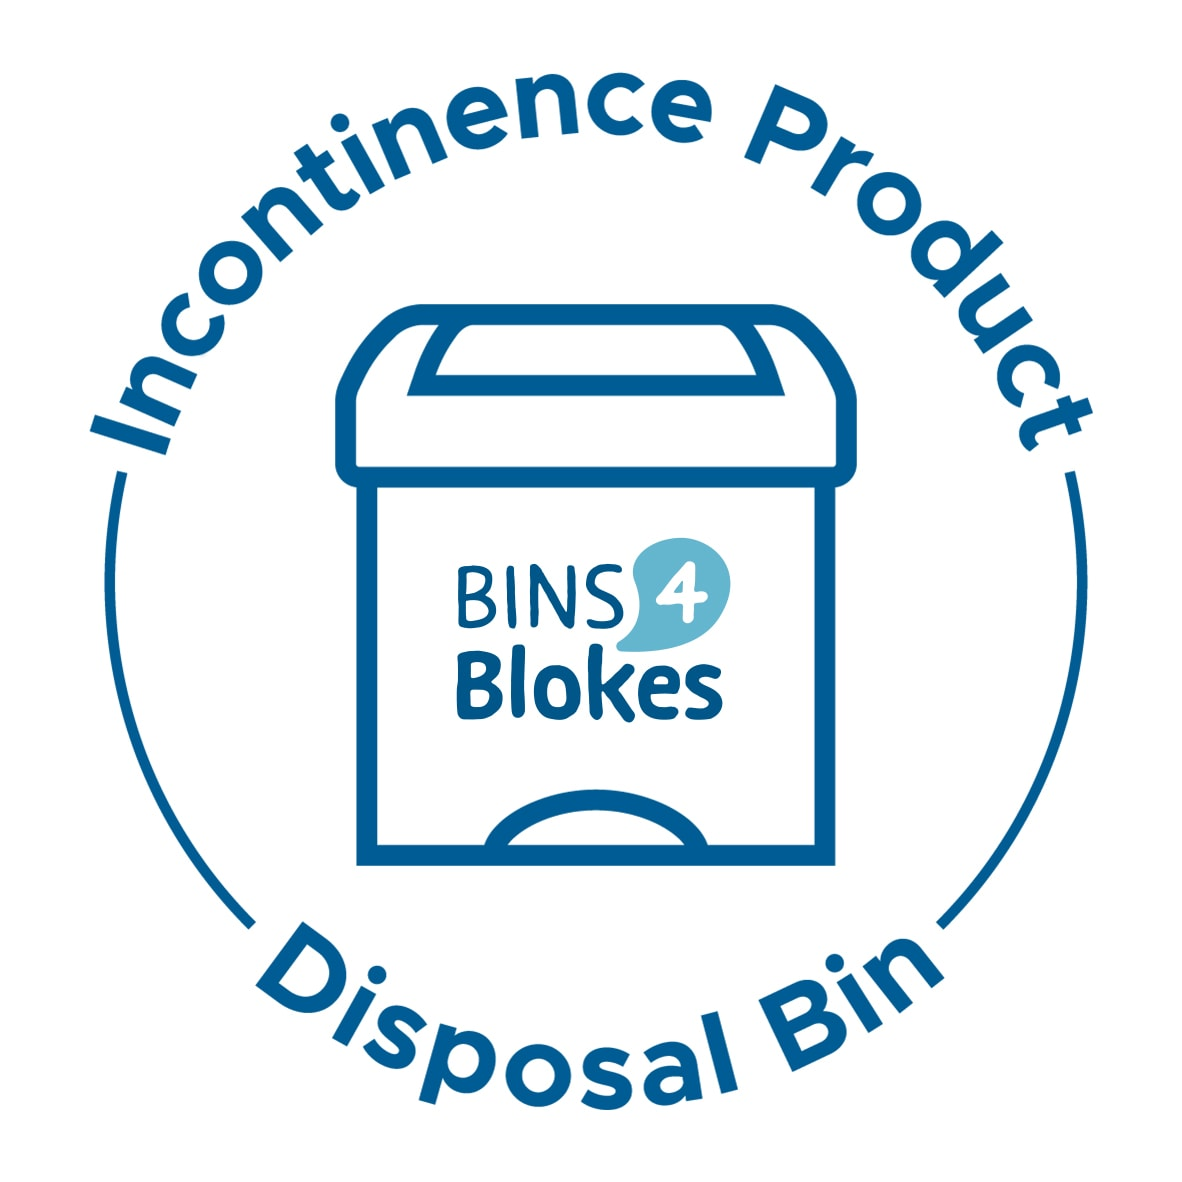 Incontinence Product Disposal Bin Sticker